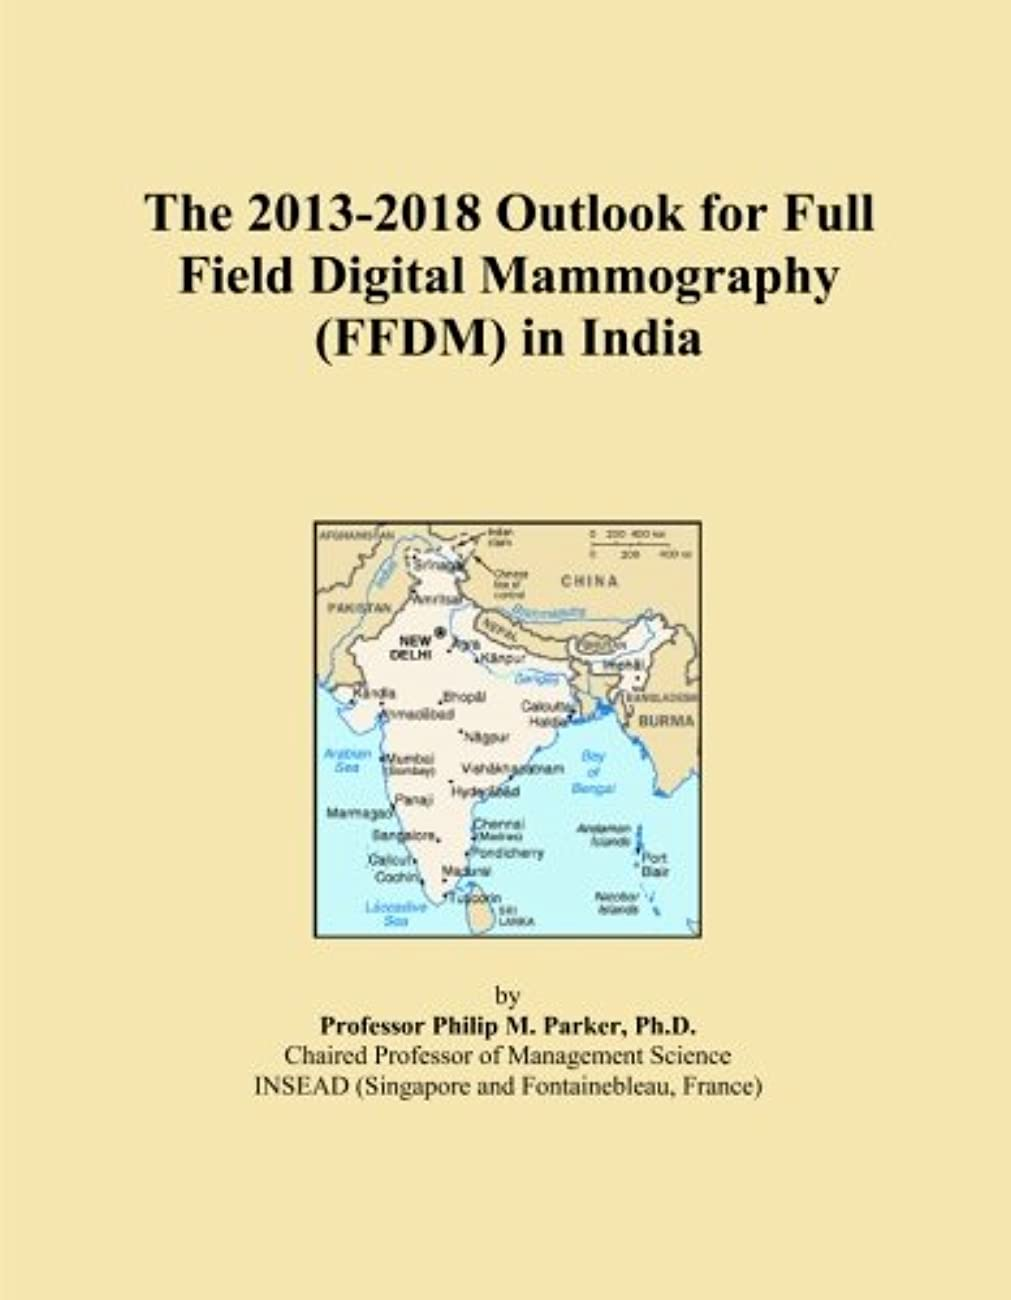 The 2013-2018 Outlook for Full Field Digital Mammography (FFDM) in India